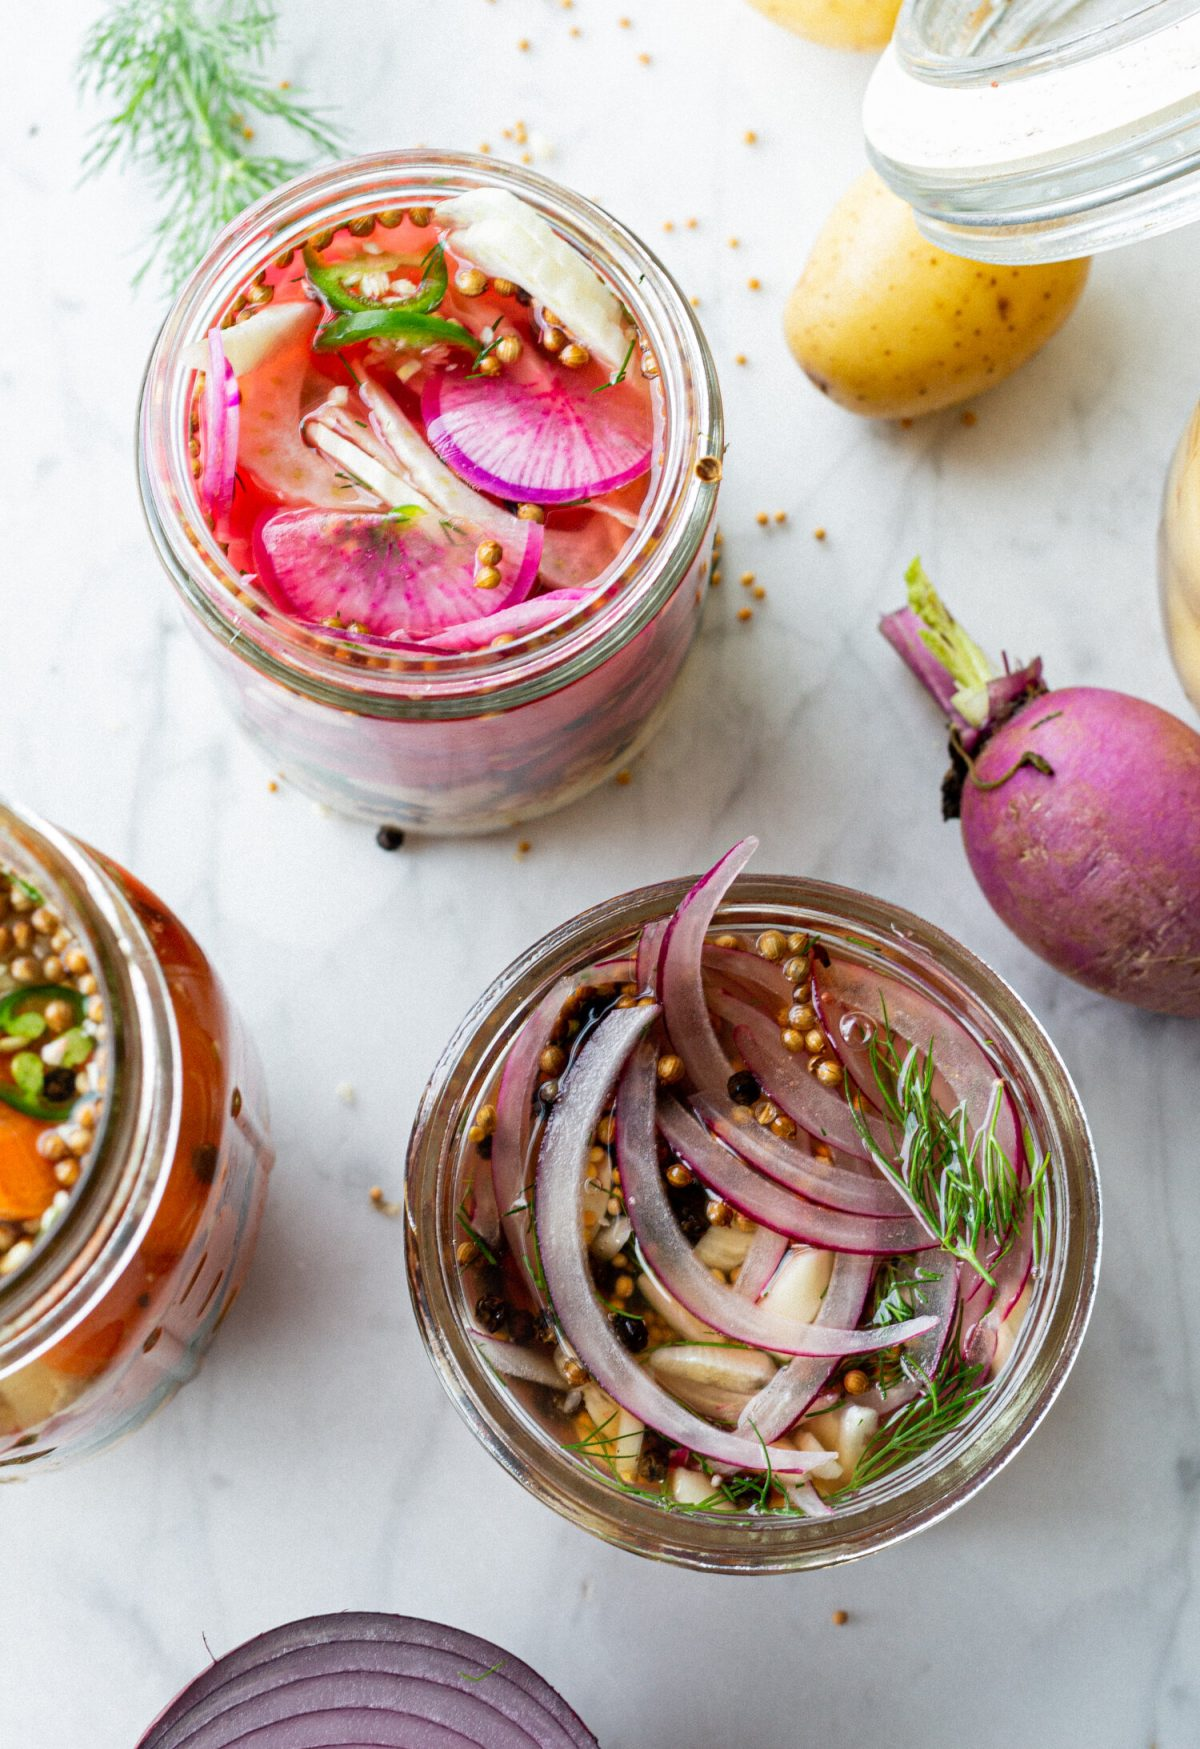 radishes and seeds in a jar on a counter showing how to pickle veggies